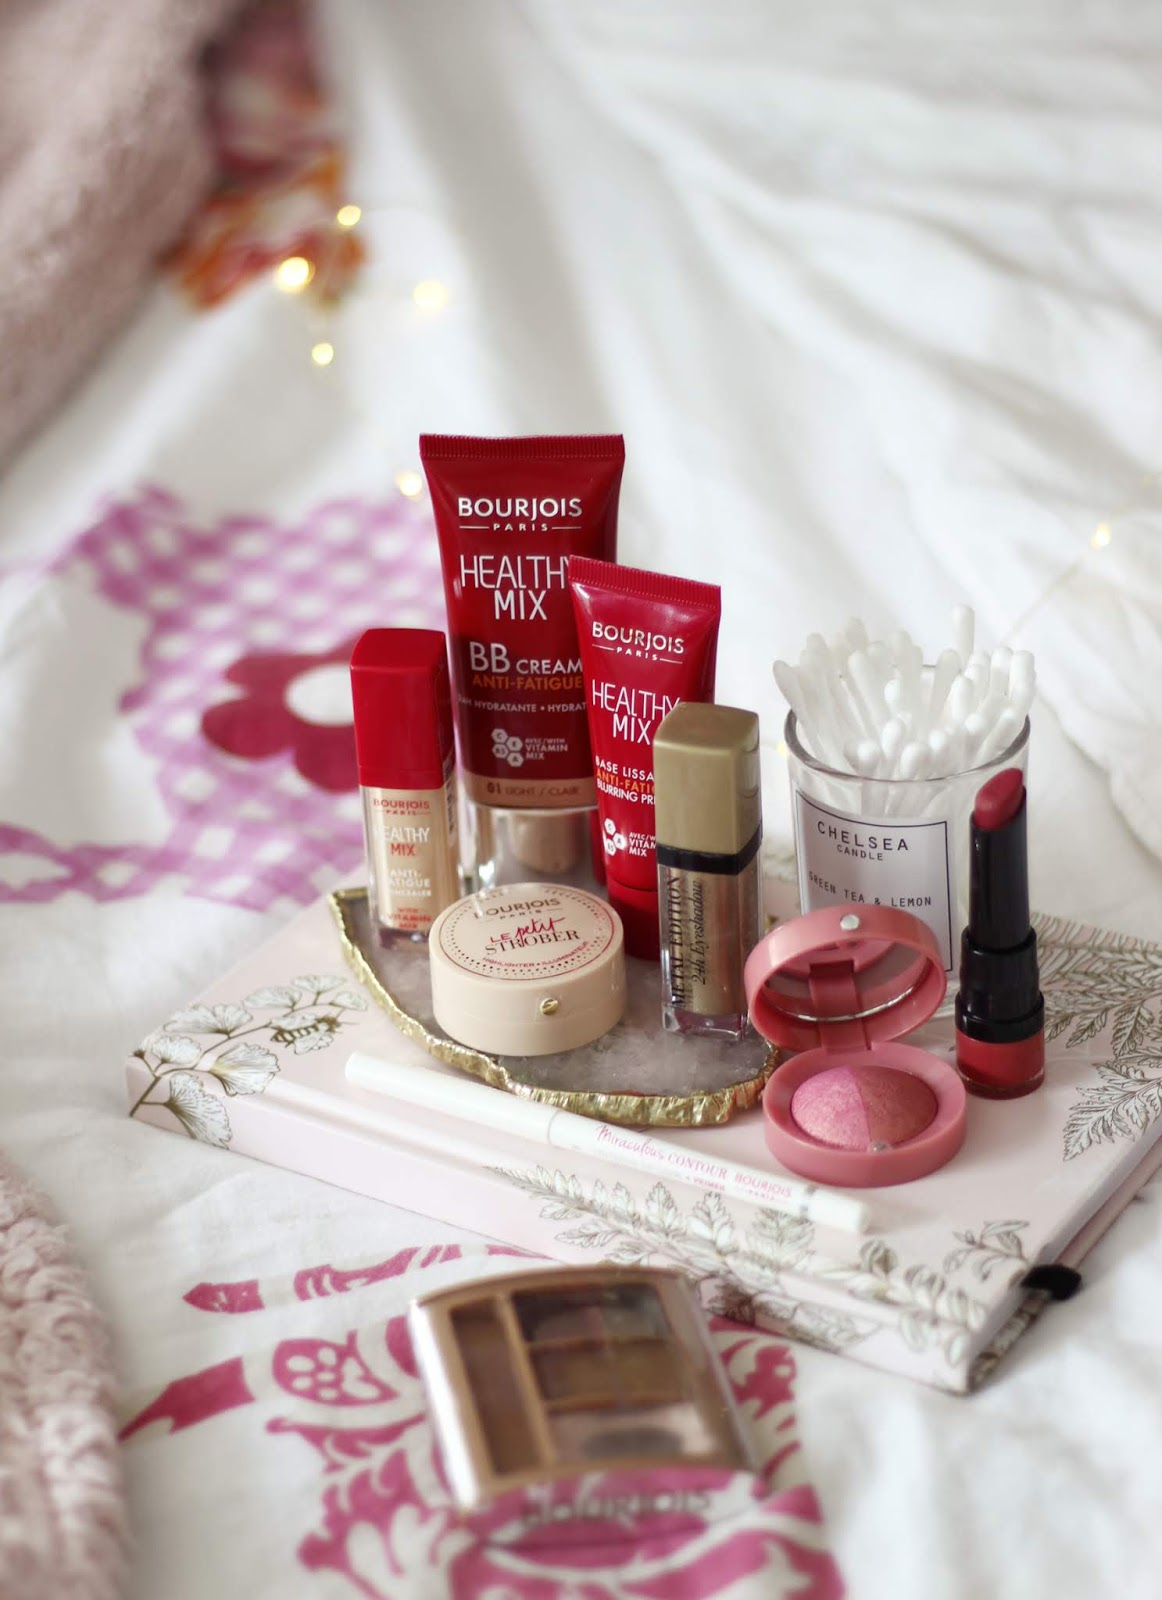 Full face and Test of Bourjois - Healthy Mix BB Cream, Le